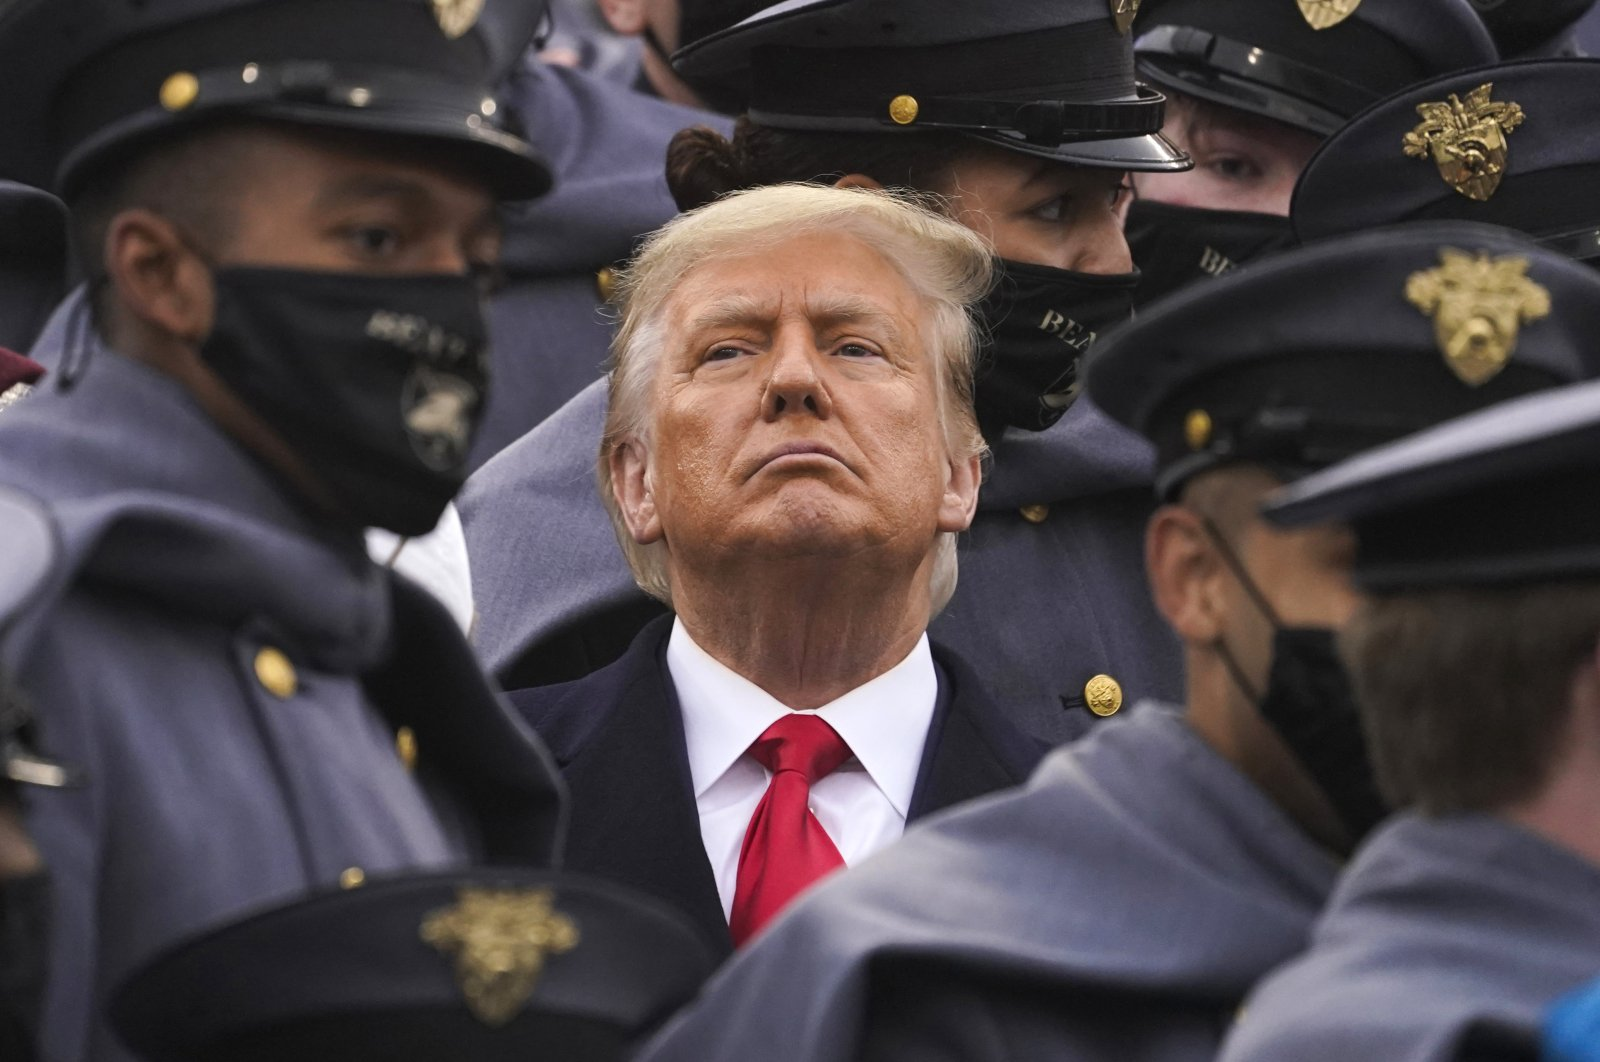 Surrounded by U.S. Army cadets, President Donald Trump watches the first half of the 121st Army-Navy Football Game in Michie Stadium at the United States Military Academy, in West Point, New York, U.S., Dec. 12, 2020. (AP Photo)